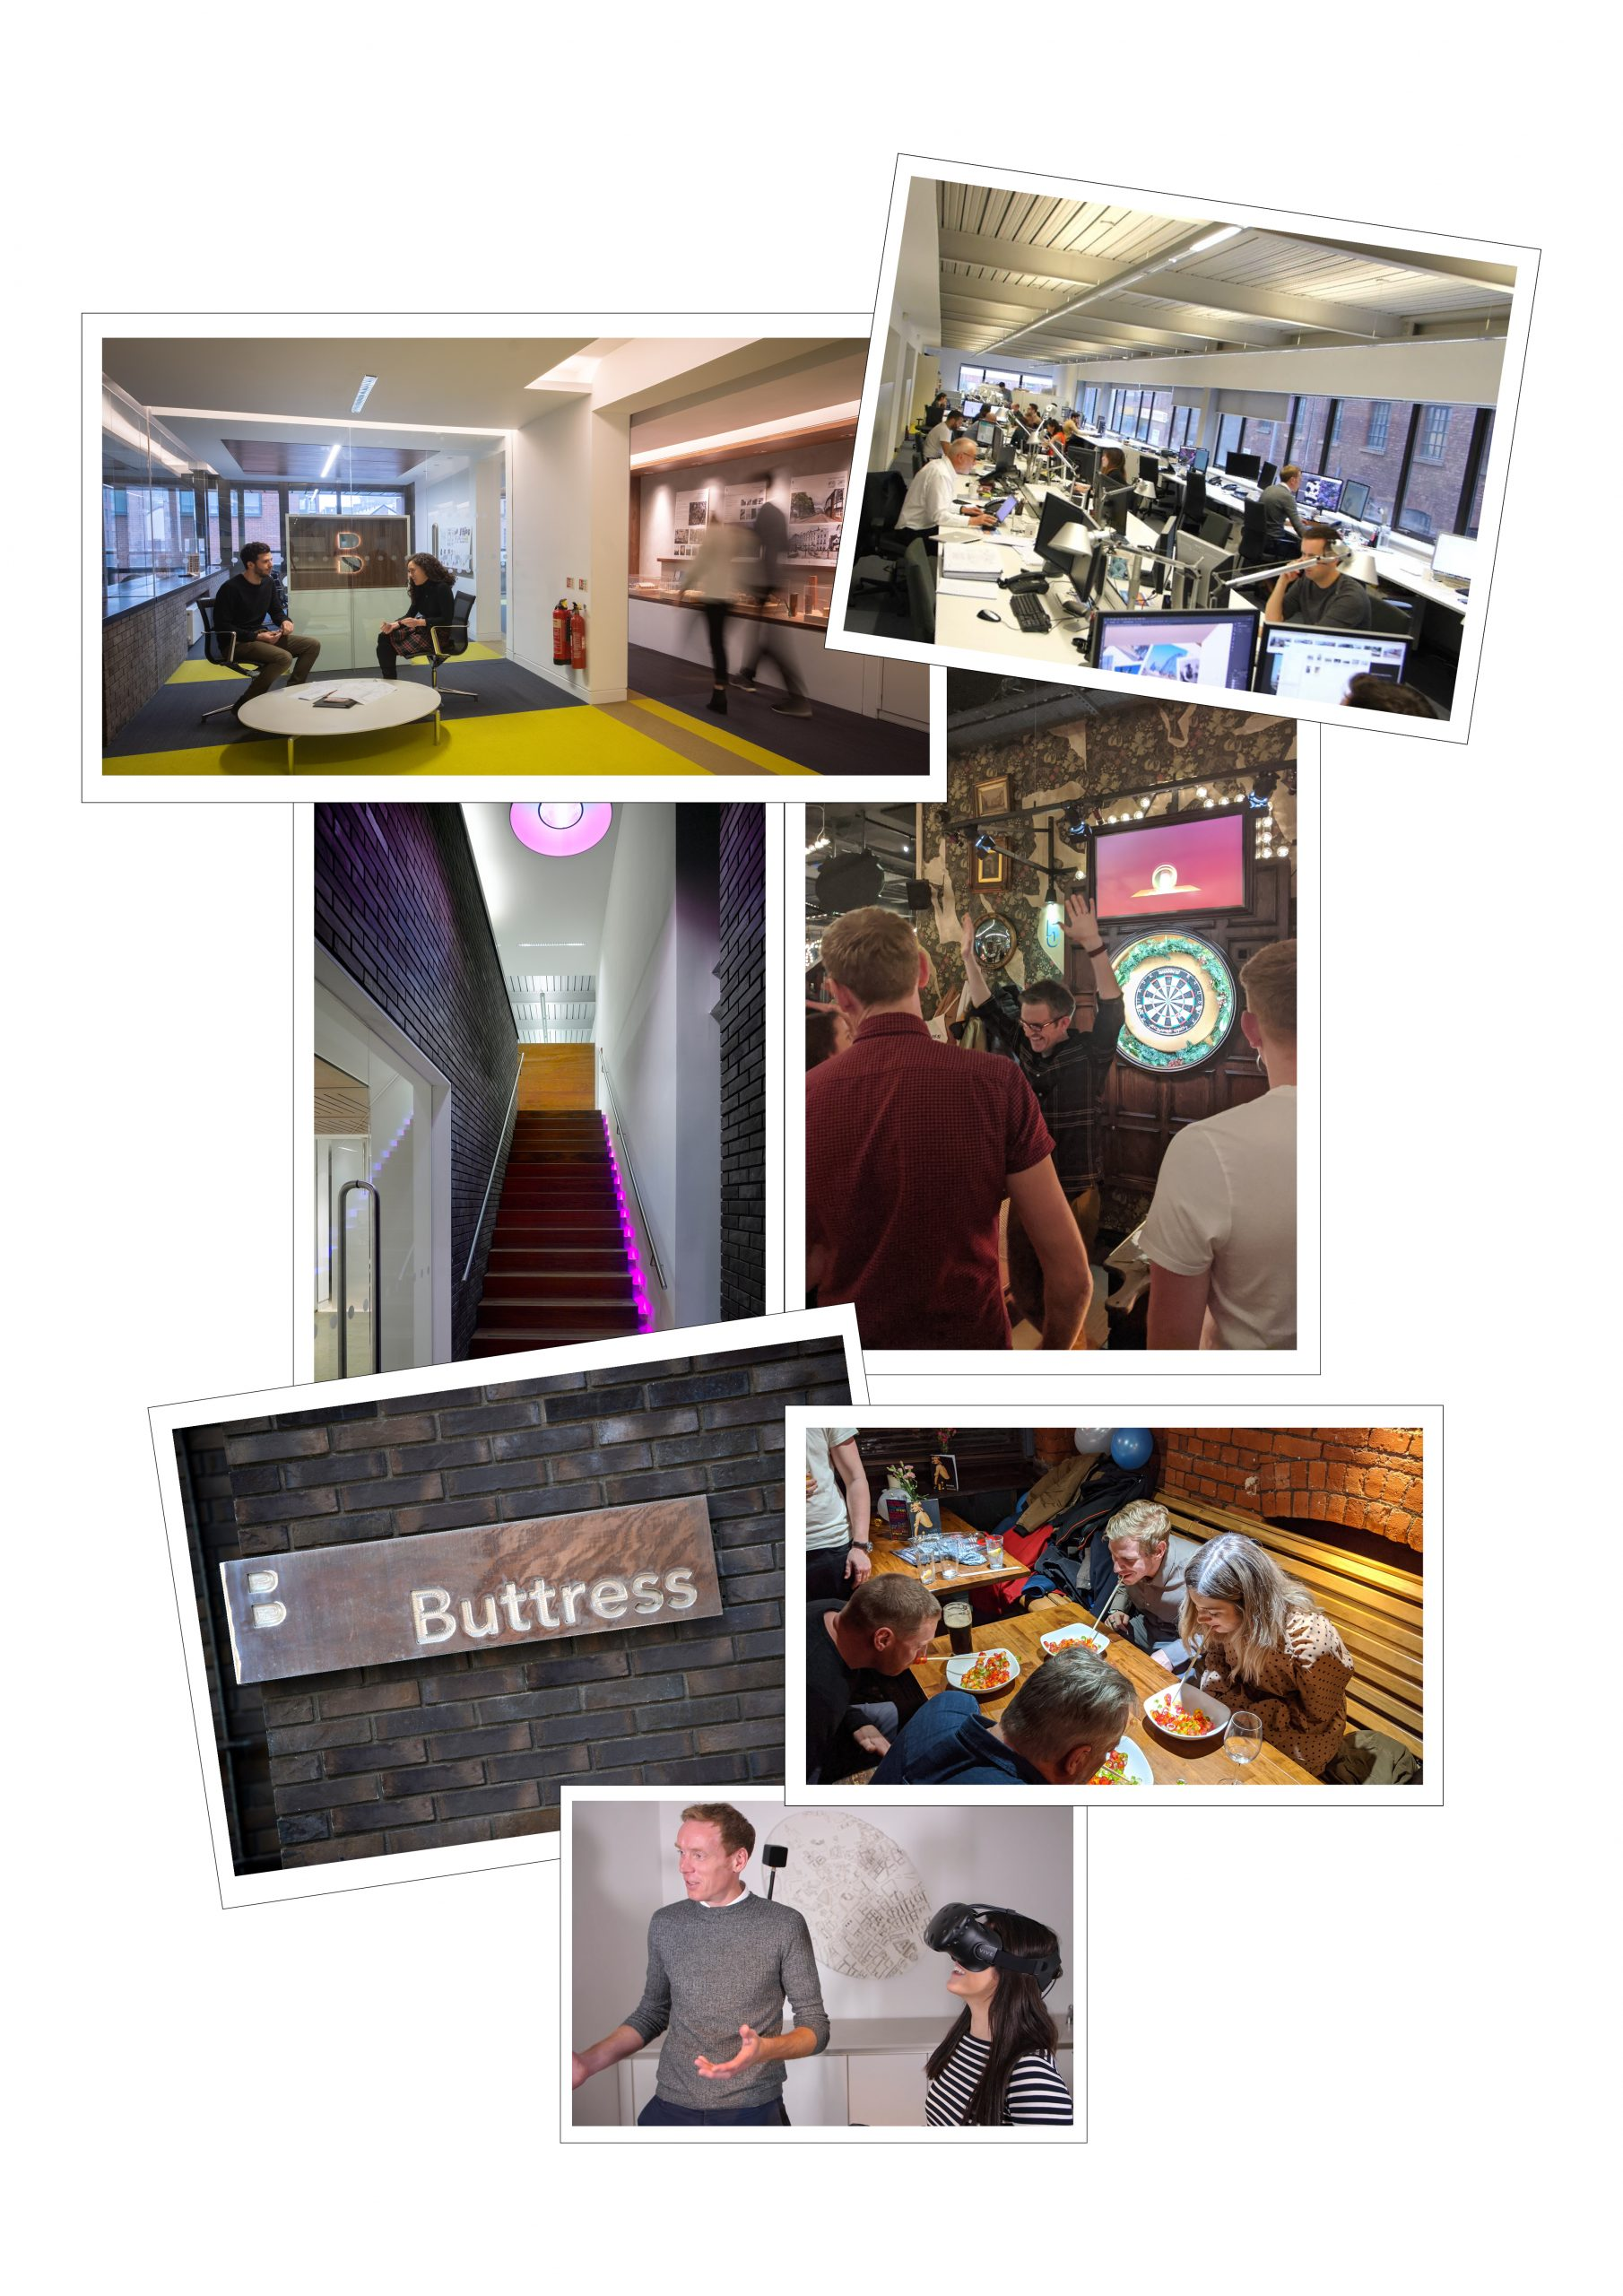 Collage of photos showing the life and culture of working at Buttress Architects